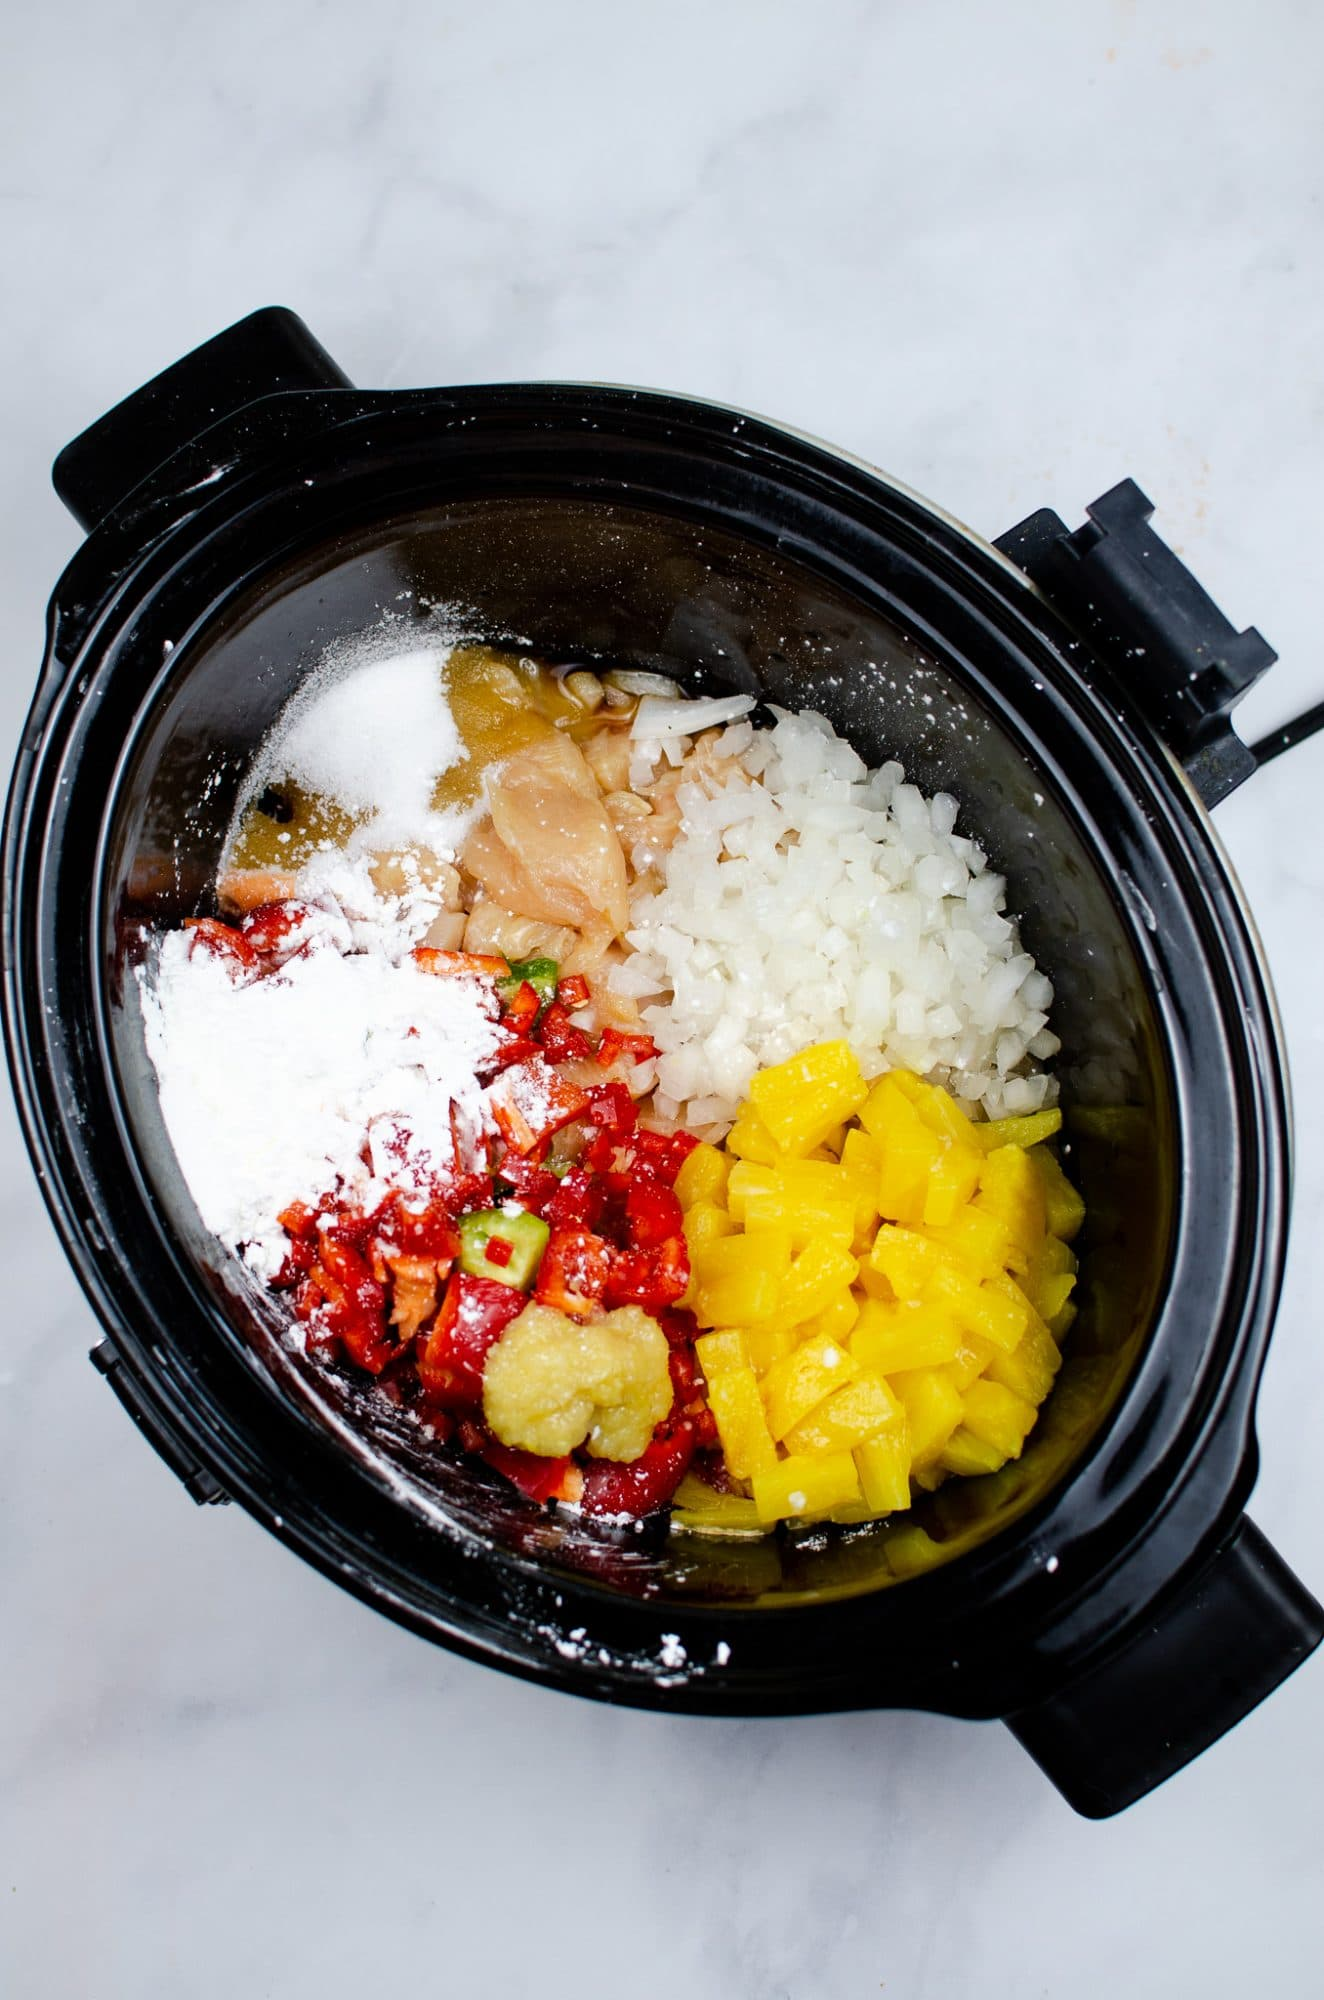 sweet and sour ingredients in crockpot